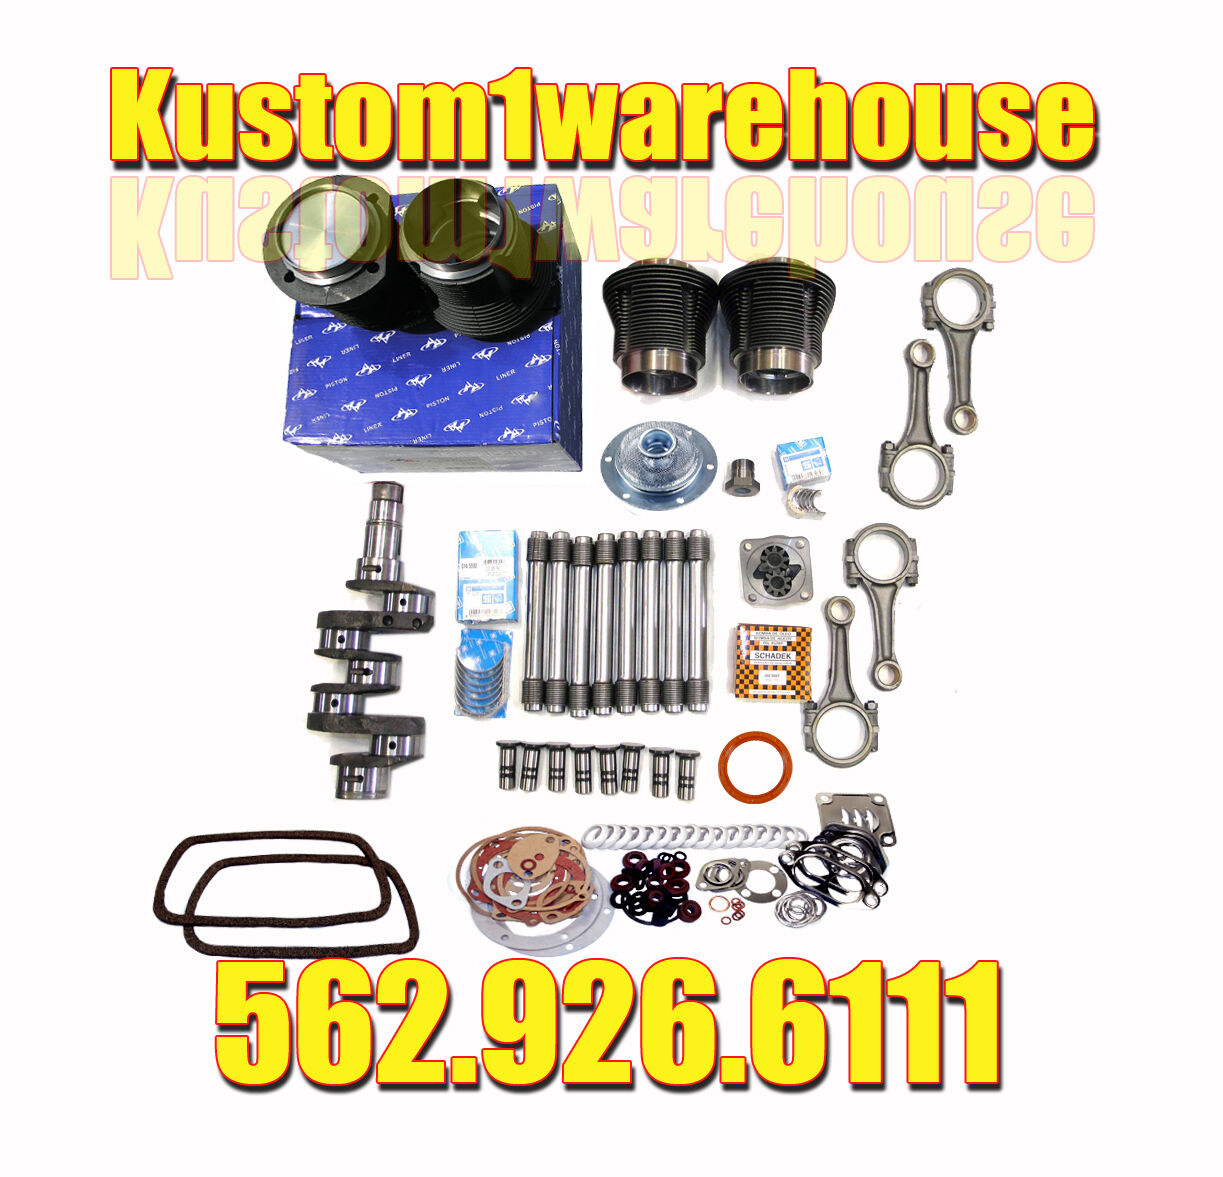 VW Parts for Sale: Beetle, Bus, Ghia and Thing Parts